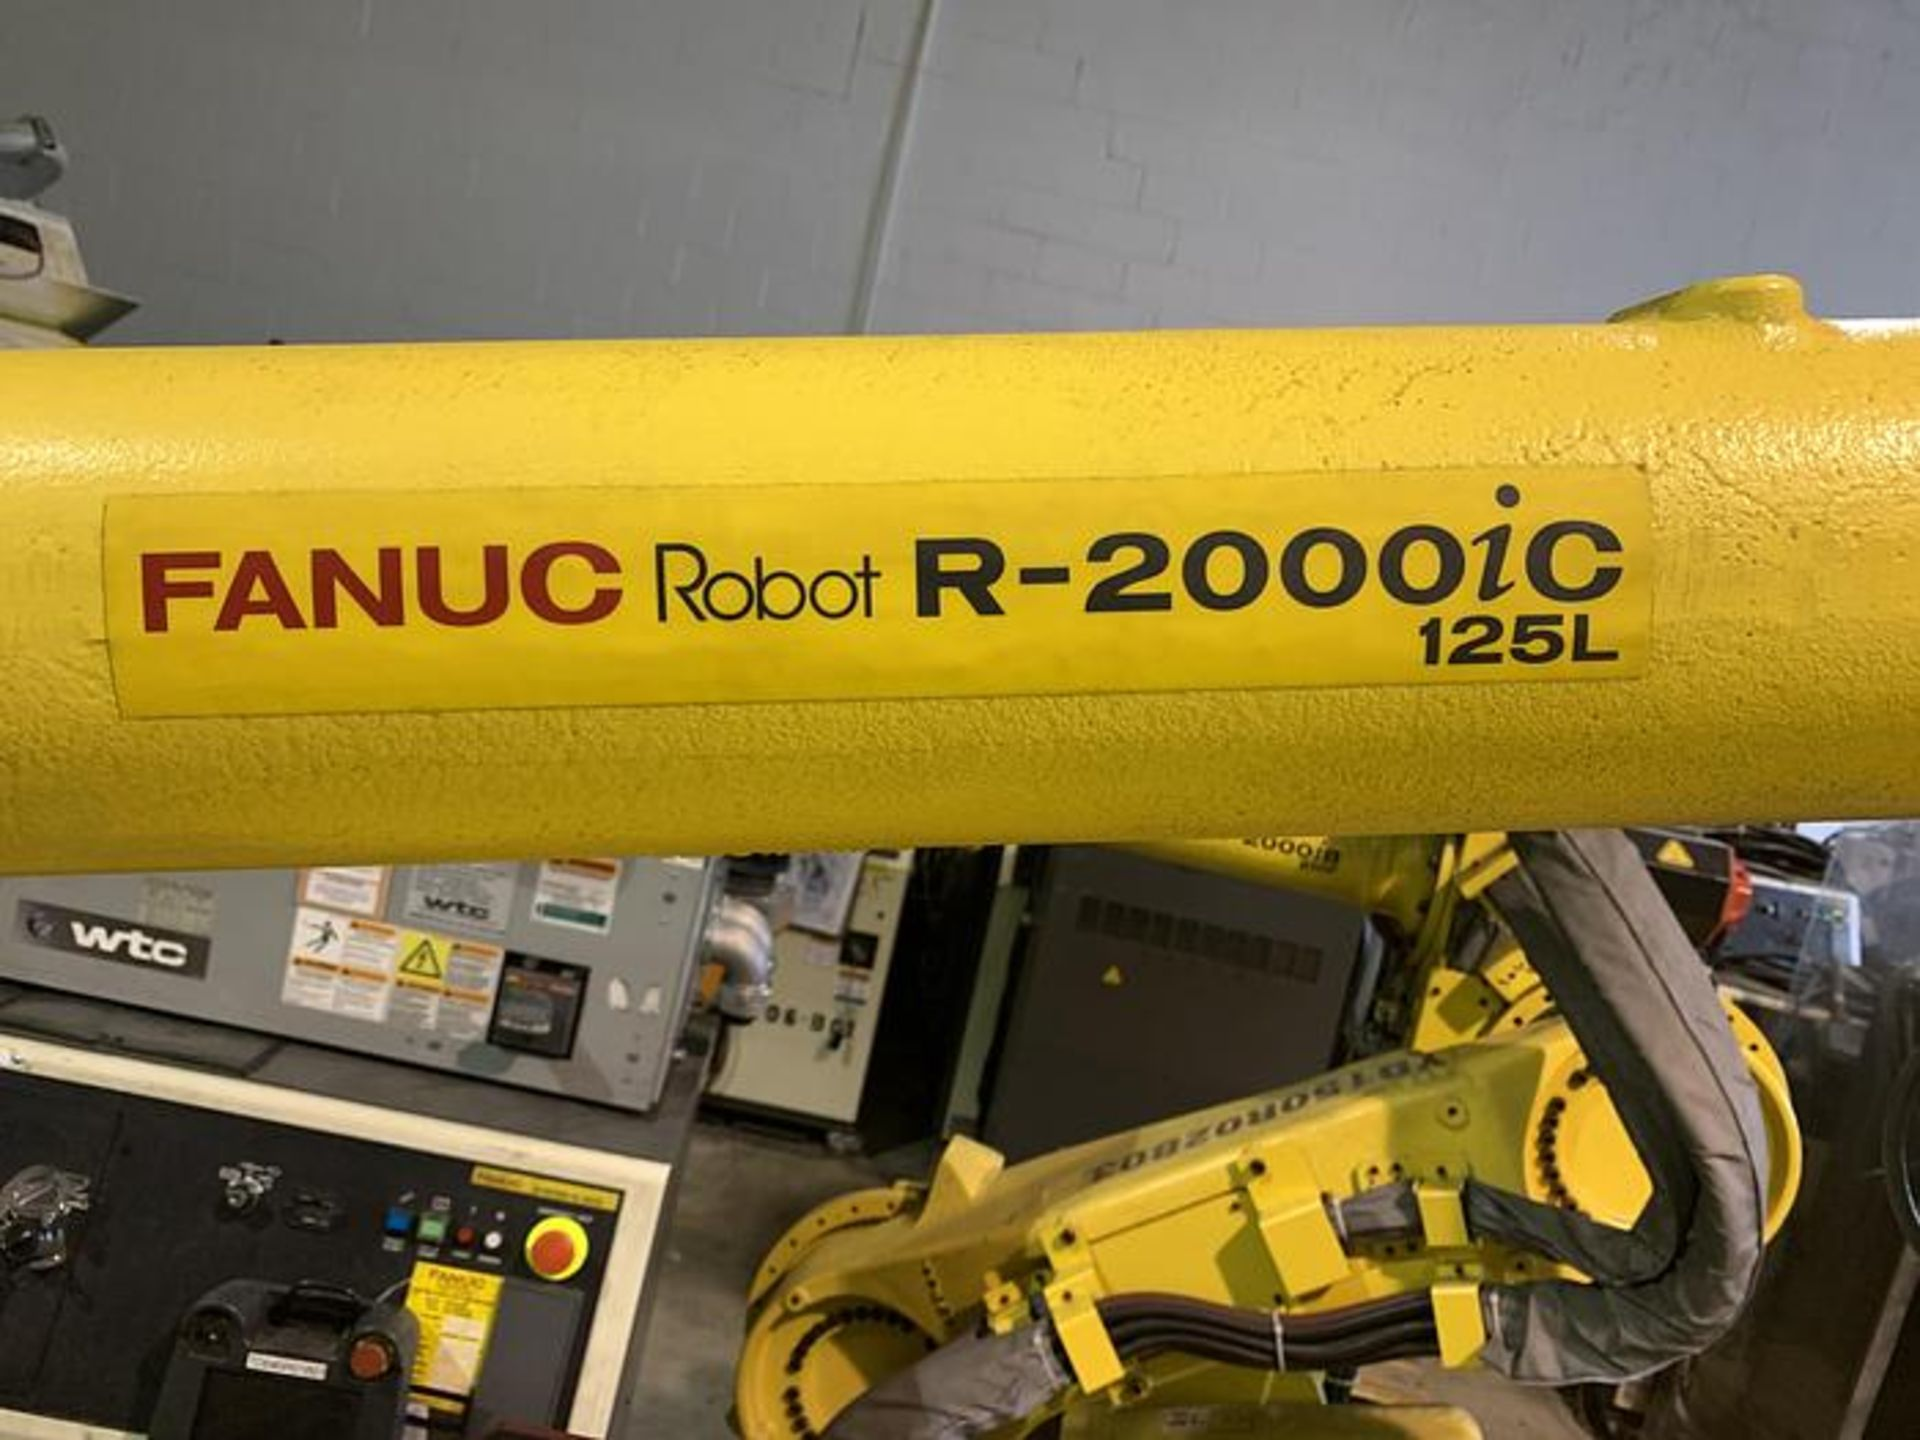 FANUC ROBOT R2000iC/125L 6 AXIS ROBOT WITH R30iB CONTROLLER, IR VISION, SN 194246, CABLES & TEACH - Image 4 of 19